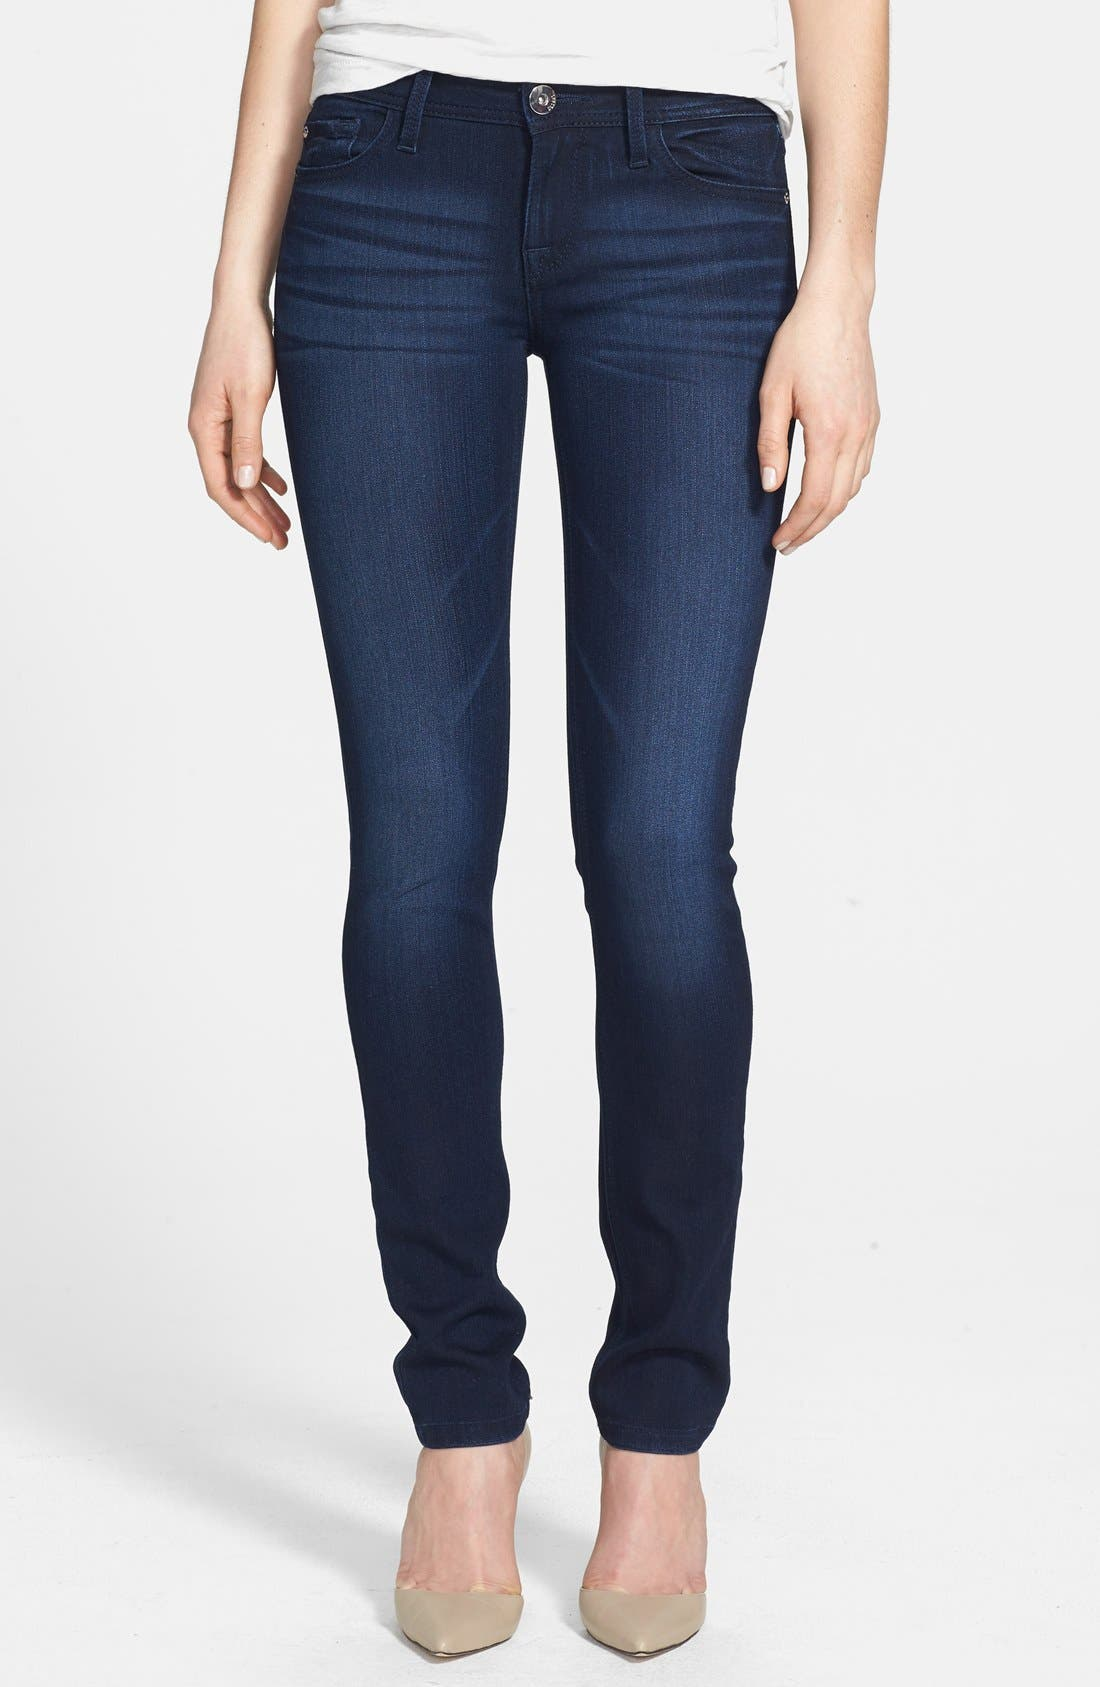 Main Image - DL1961 'Cindy' Slim Boot Jeans (Wooster)